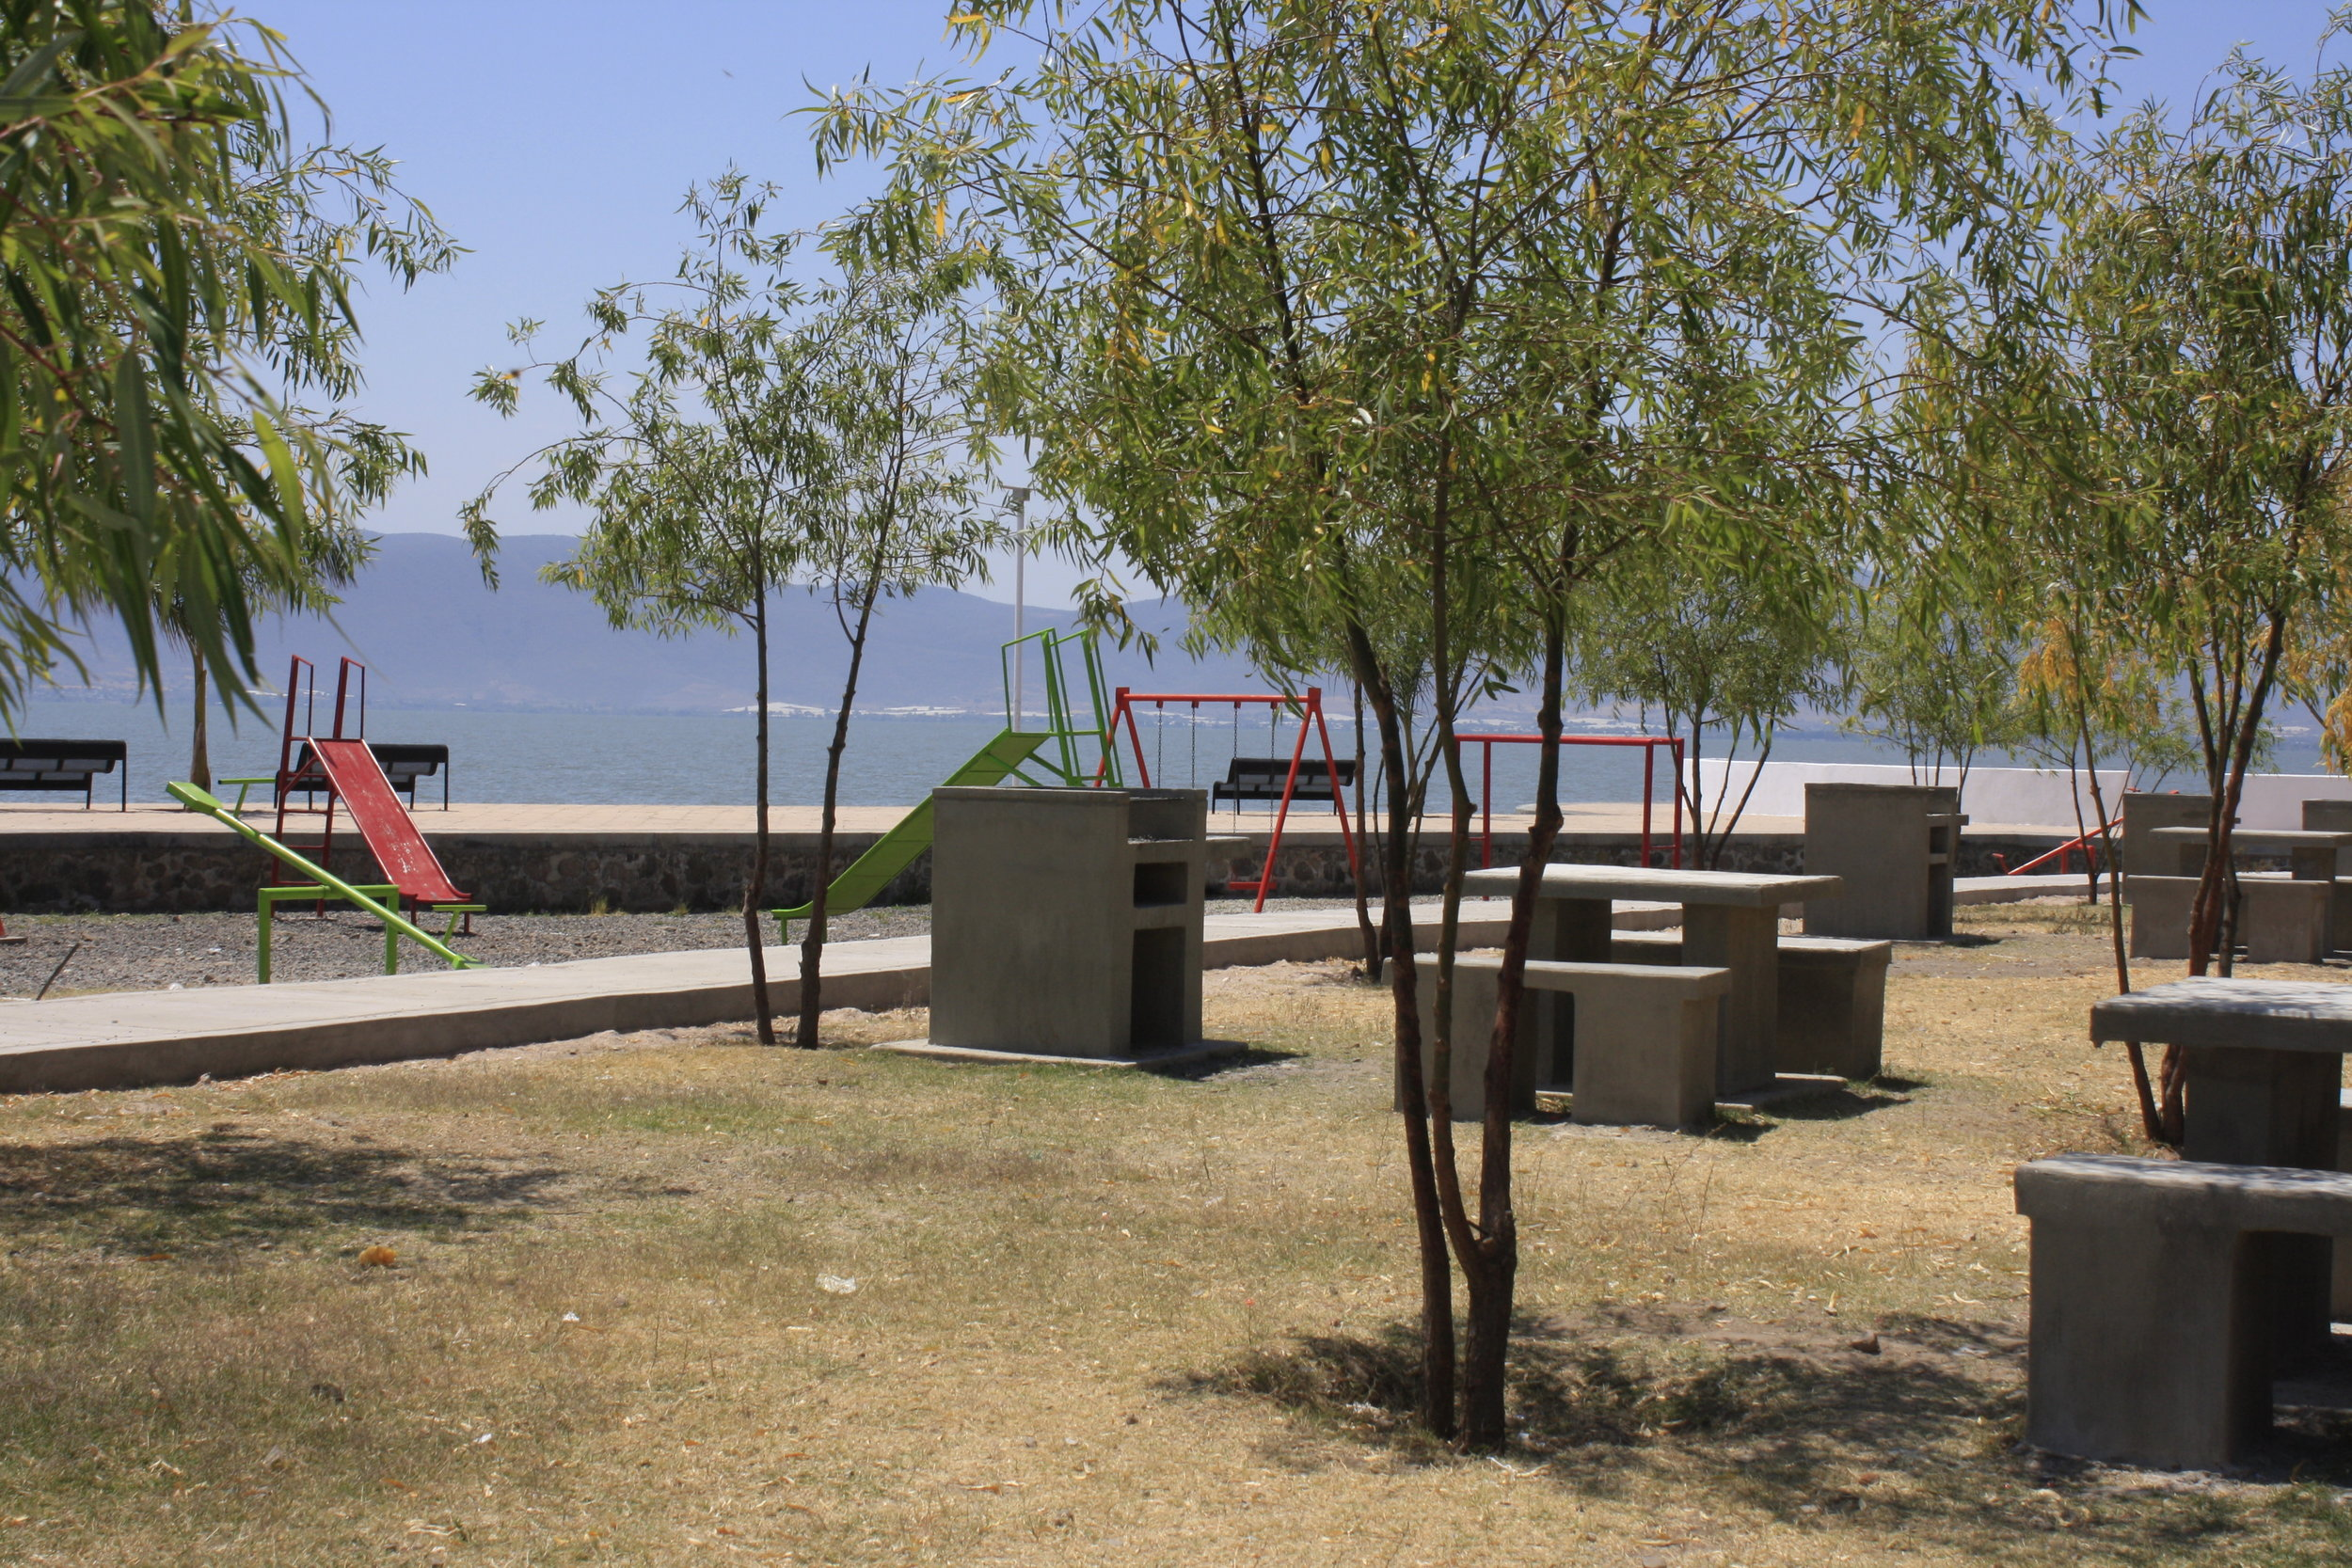 The boardwalk in San Juan Cosala doubles as a park and playground